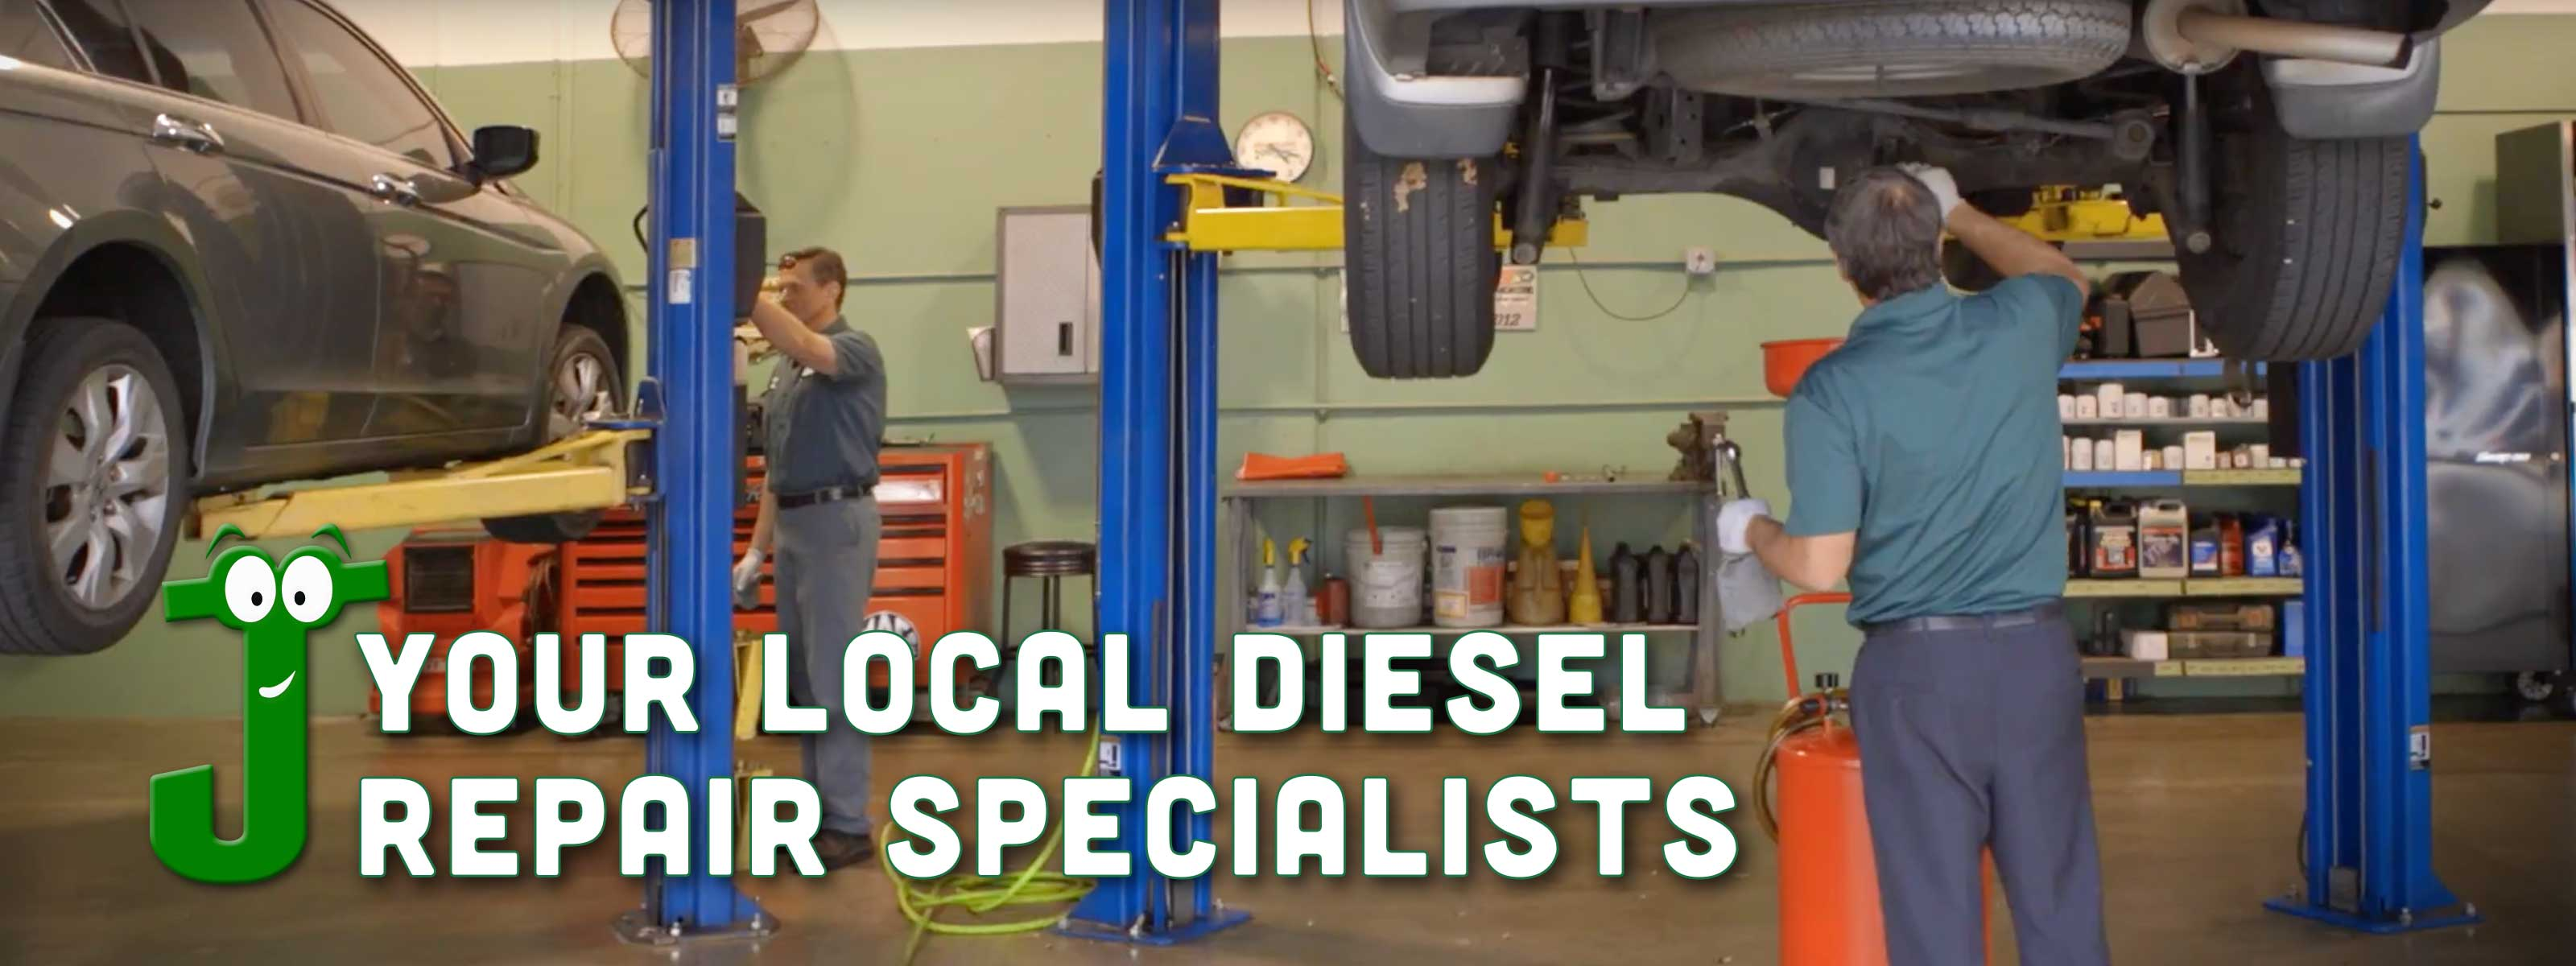 Your local diesel repair specialists